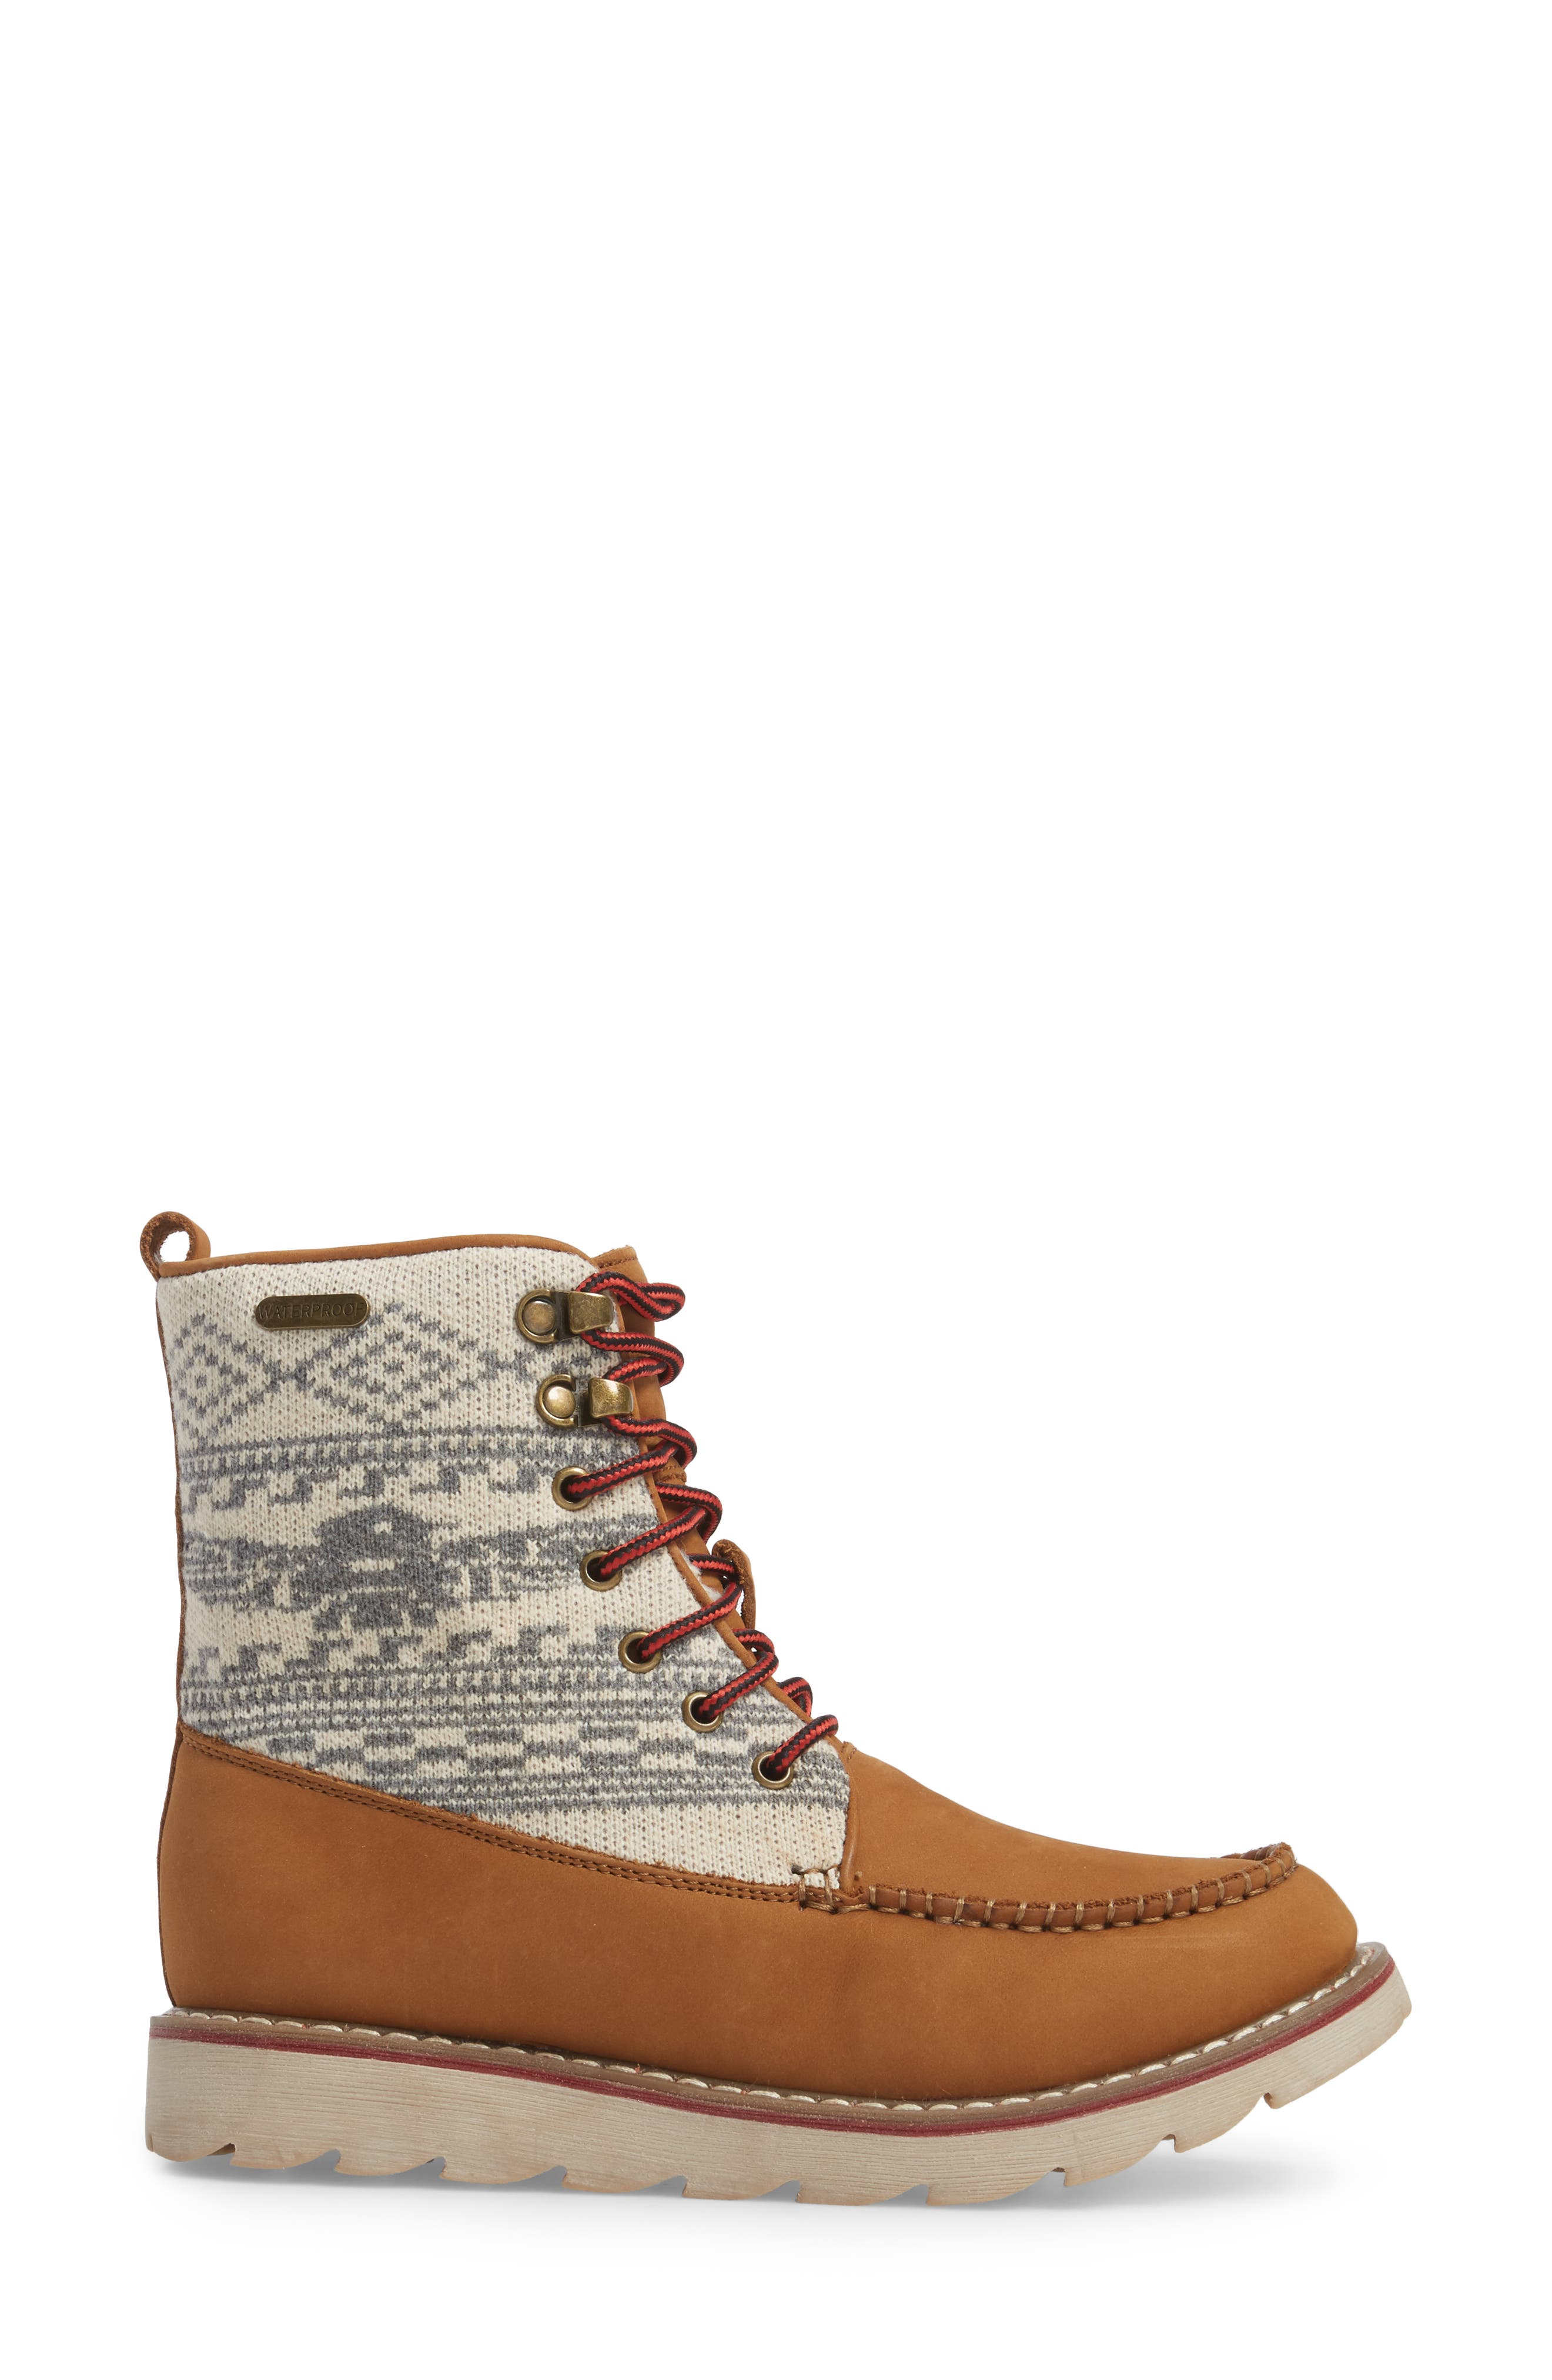 Patterned Waterproof Snow Boot,                             Alternate thumbnail 3, color,                             260